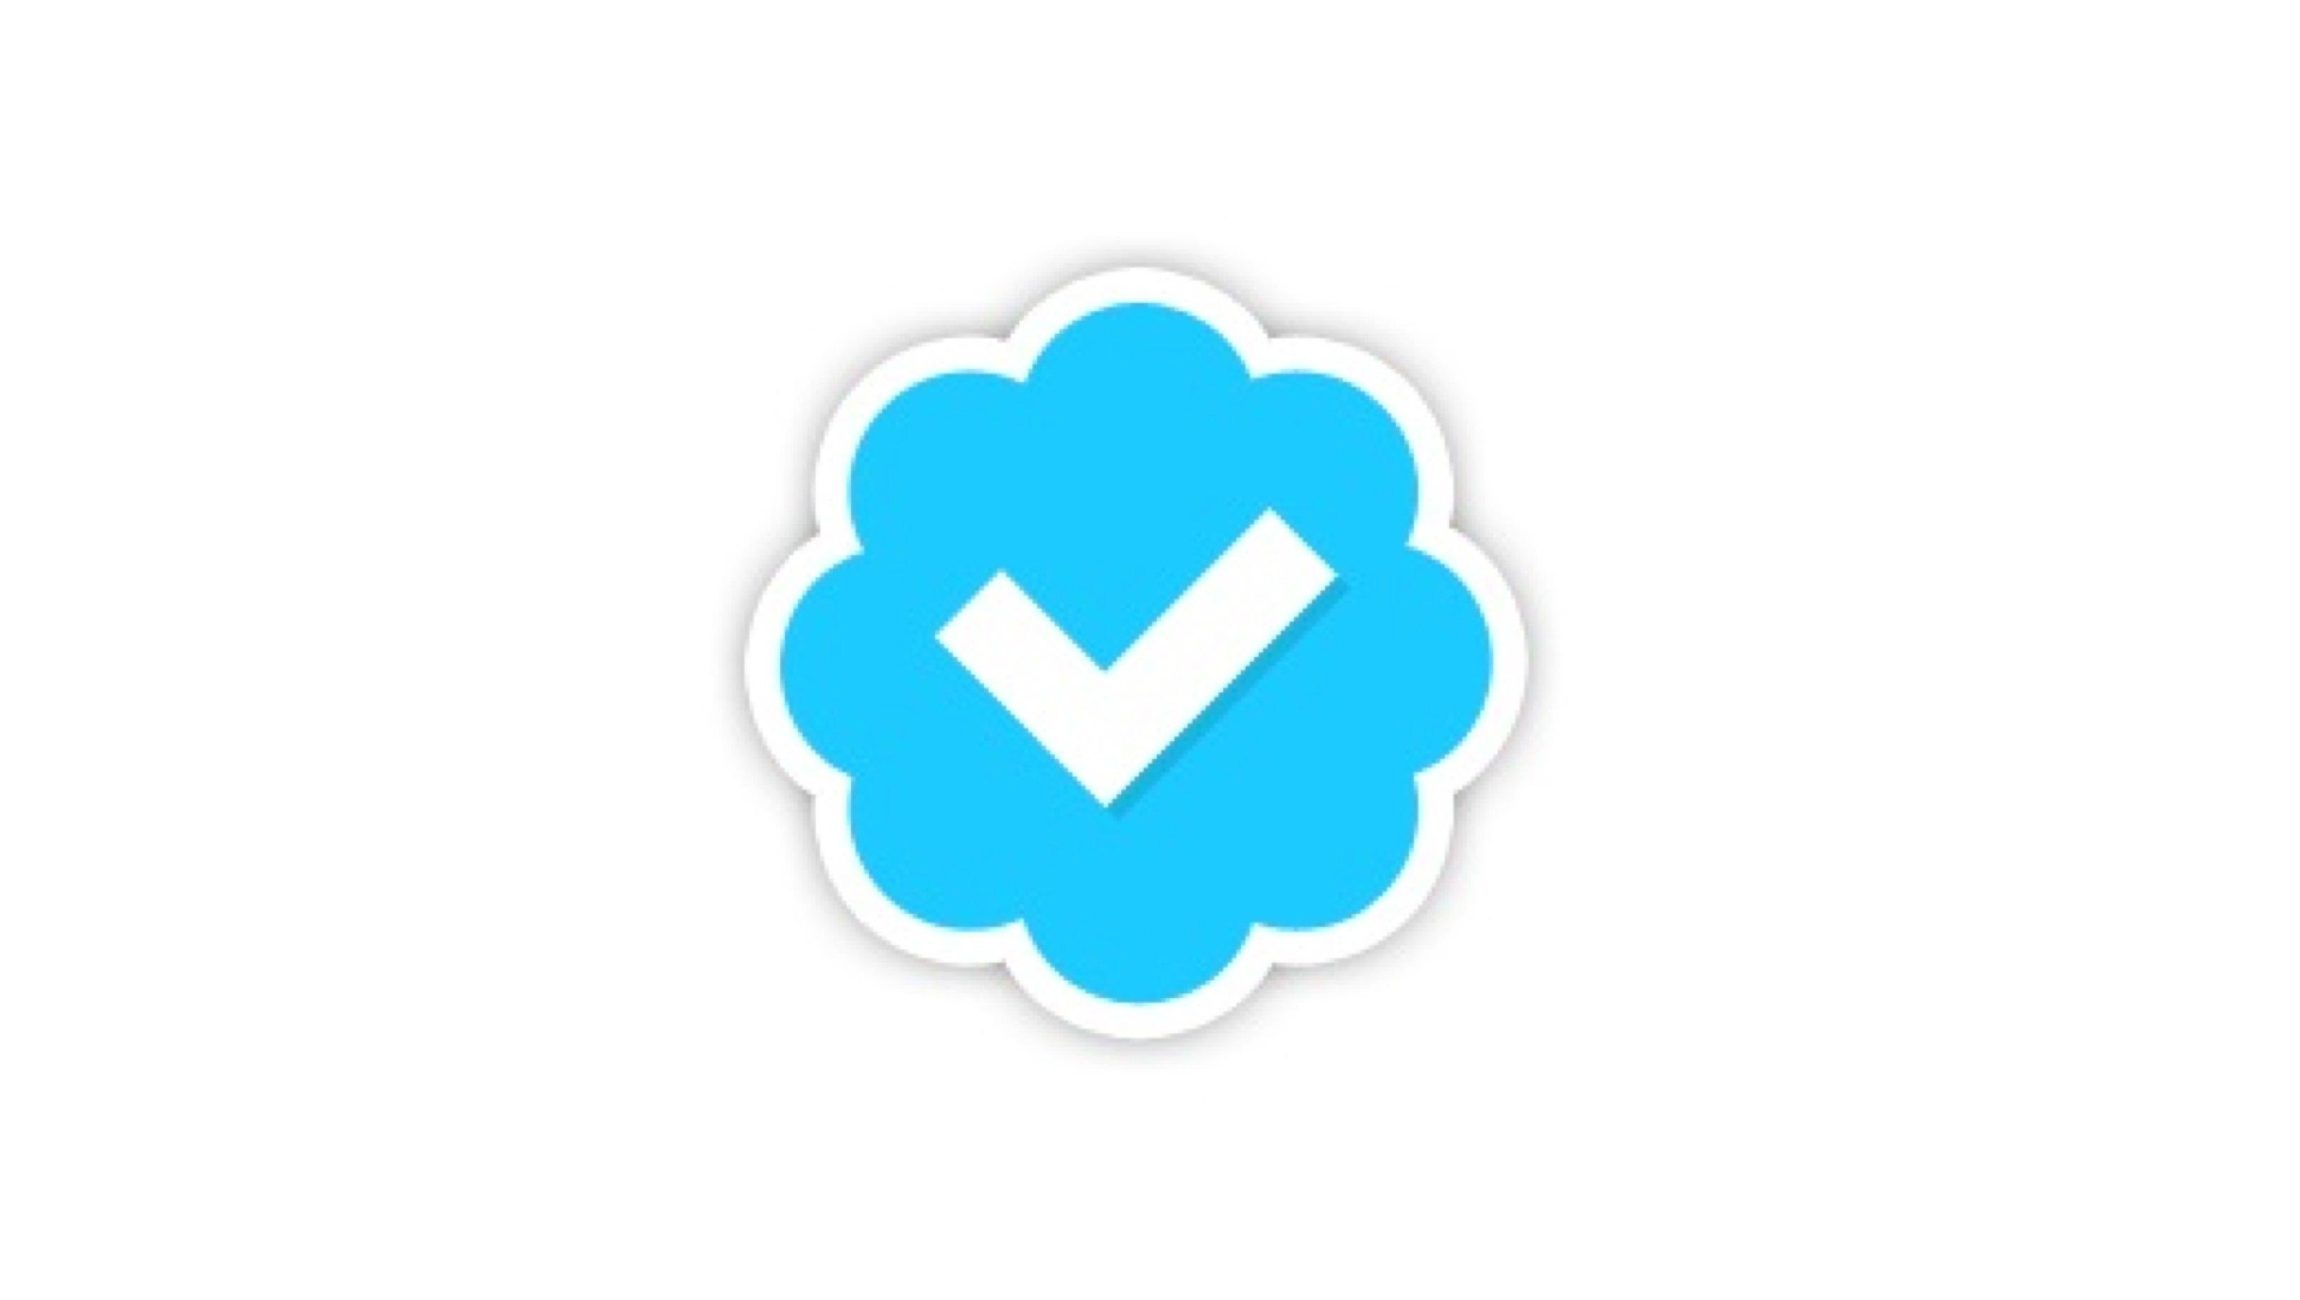 Twitter relaunches its verification system in early 2021, here's the draft criteria